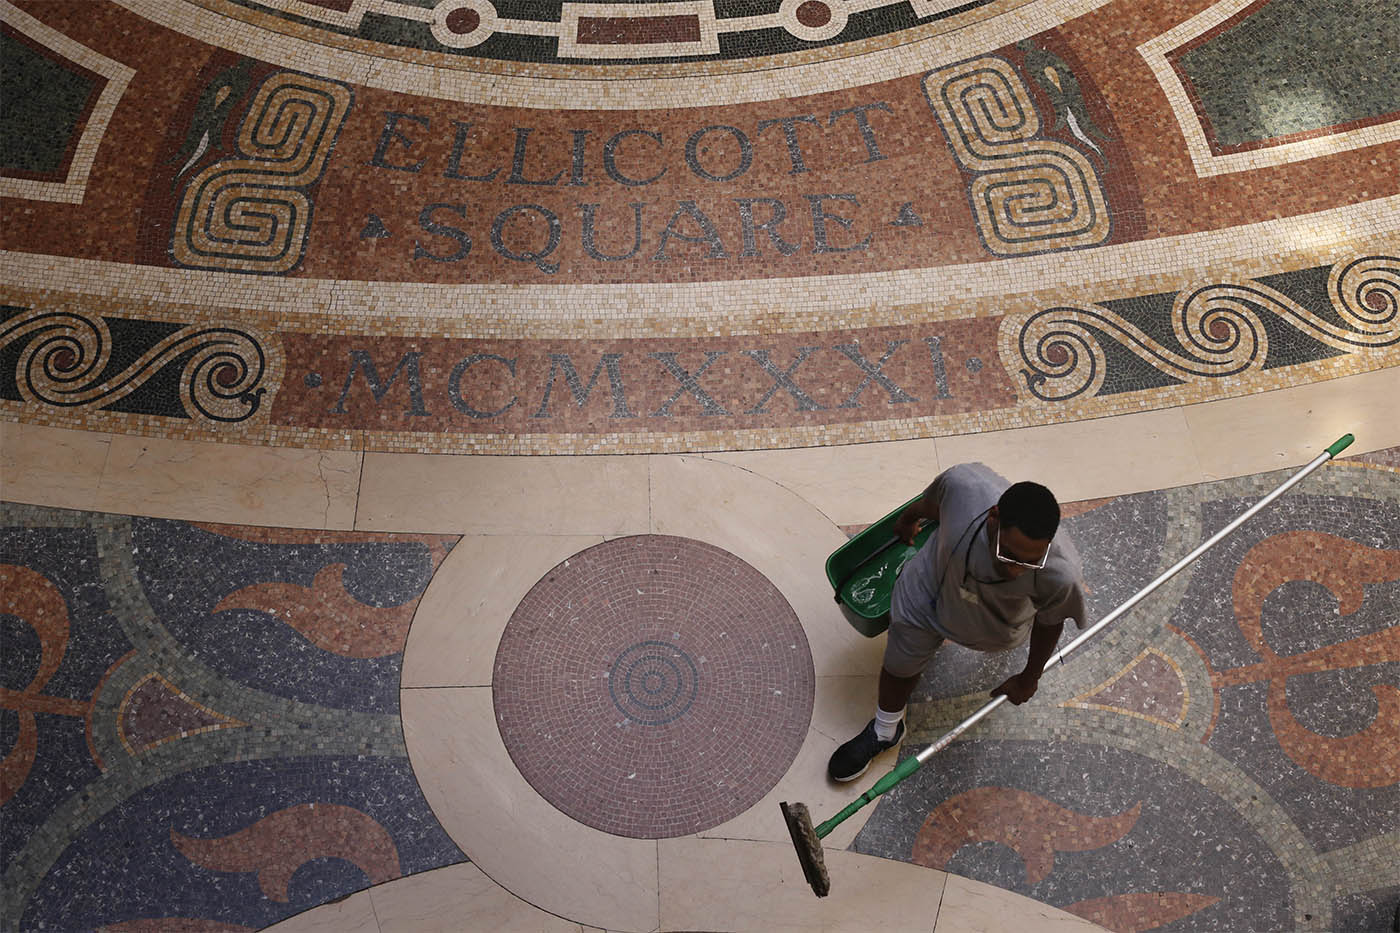 A maintenance man walks past the mosaic tile floor in the lobby of the Ellicott Square Building, Wednesday, Aug. 10, 2016. (Derek Gee/Buffalo News)